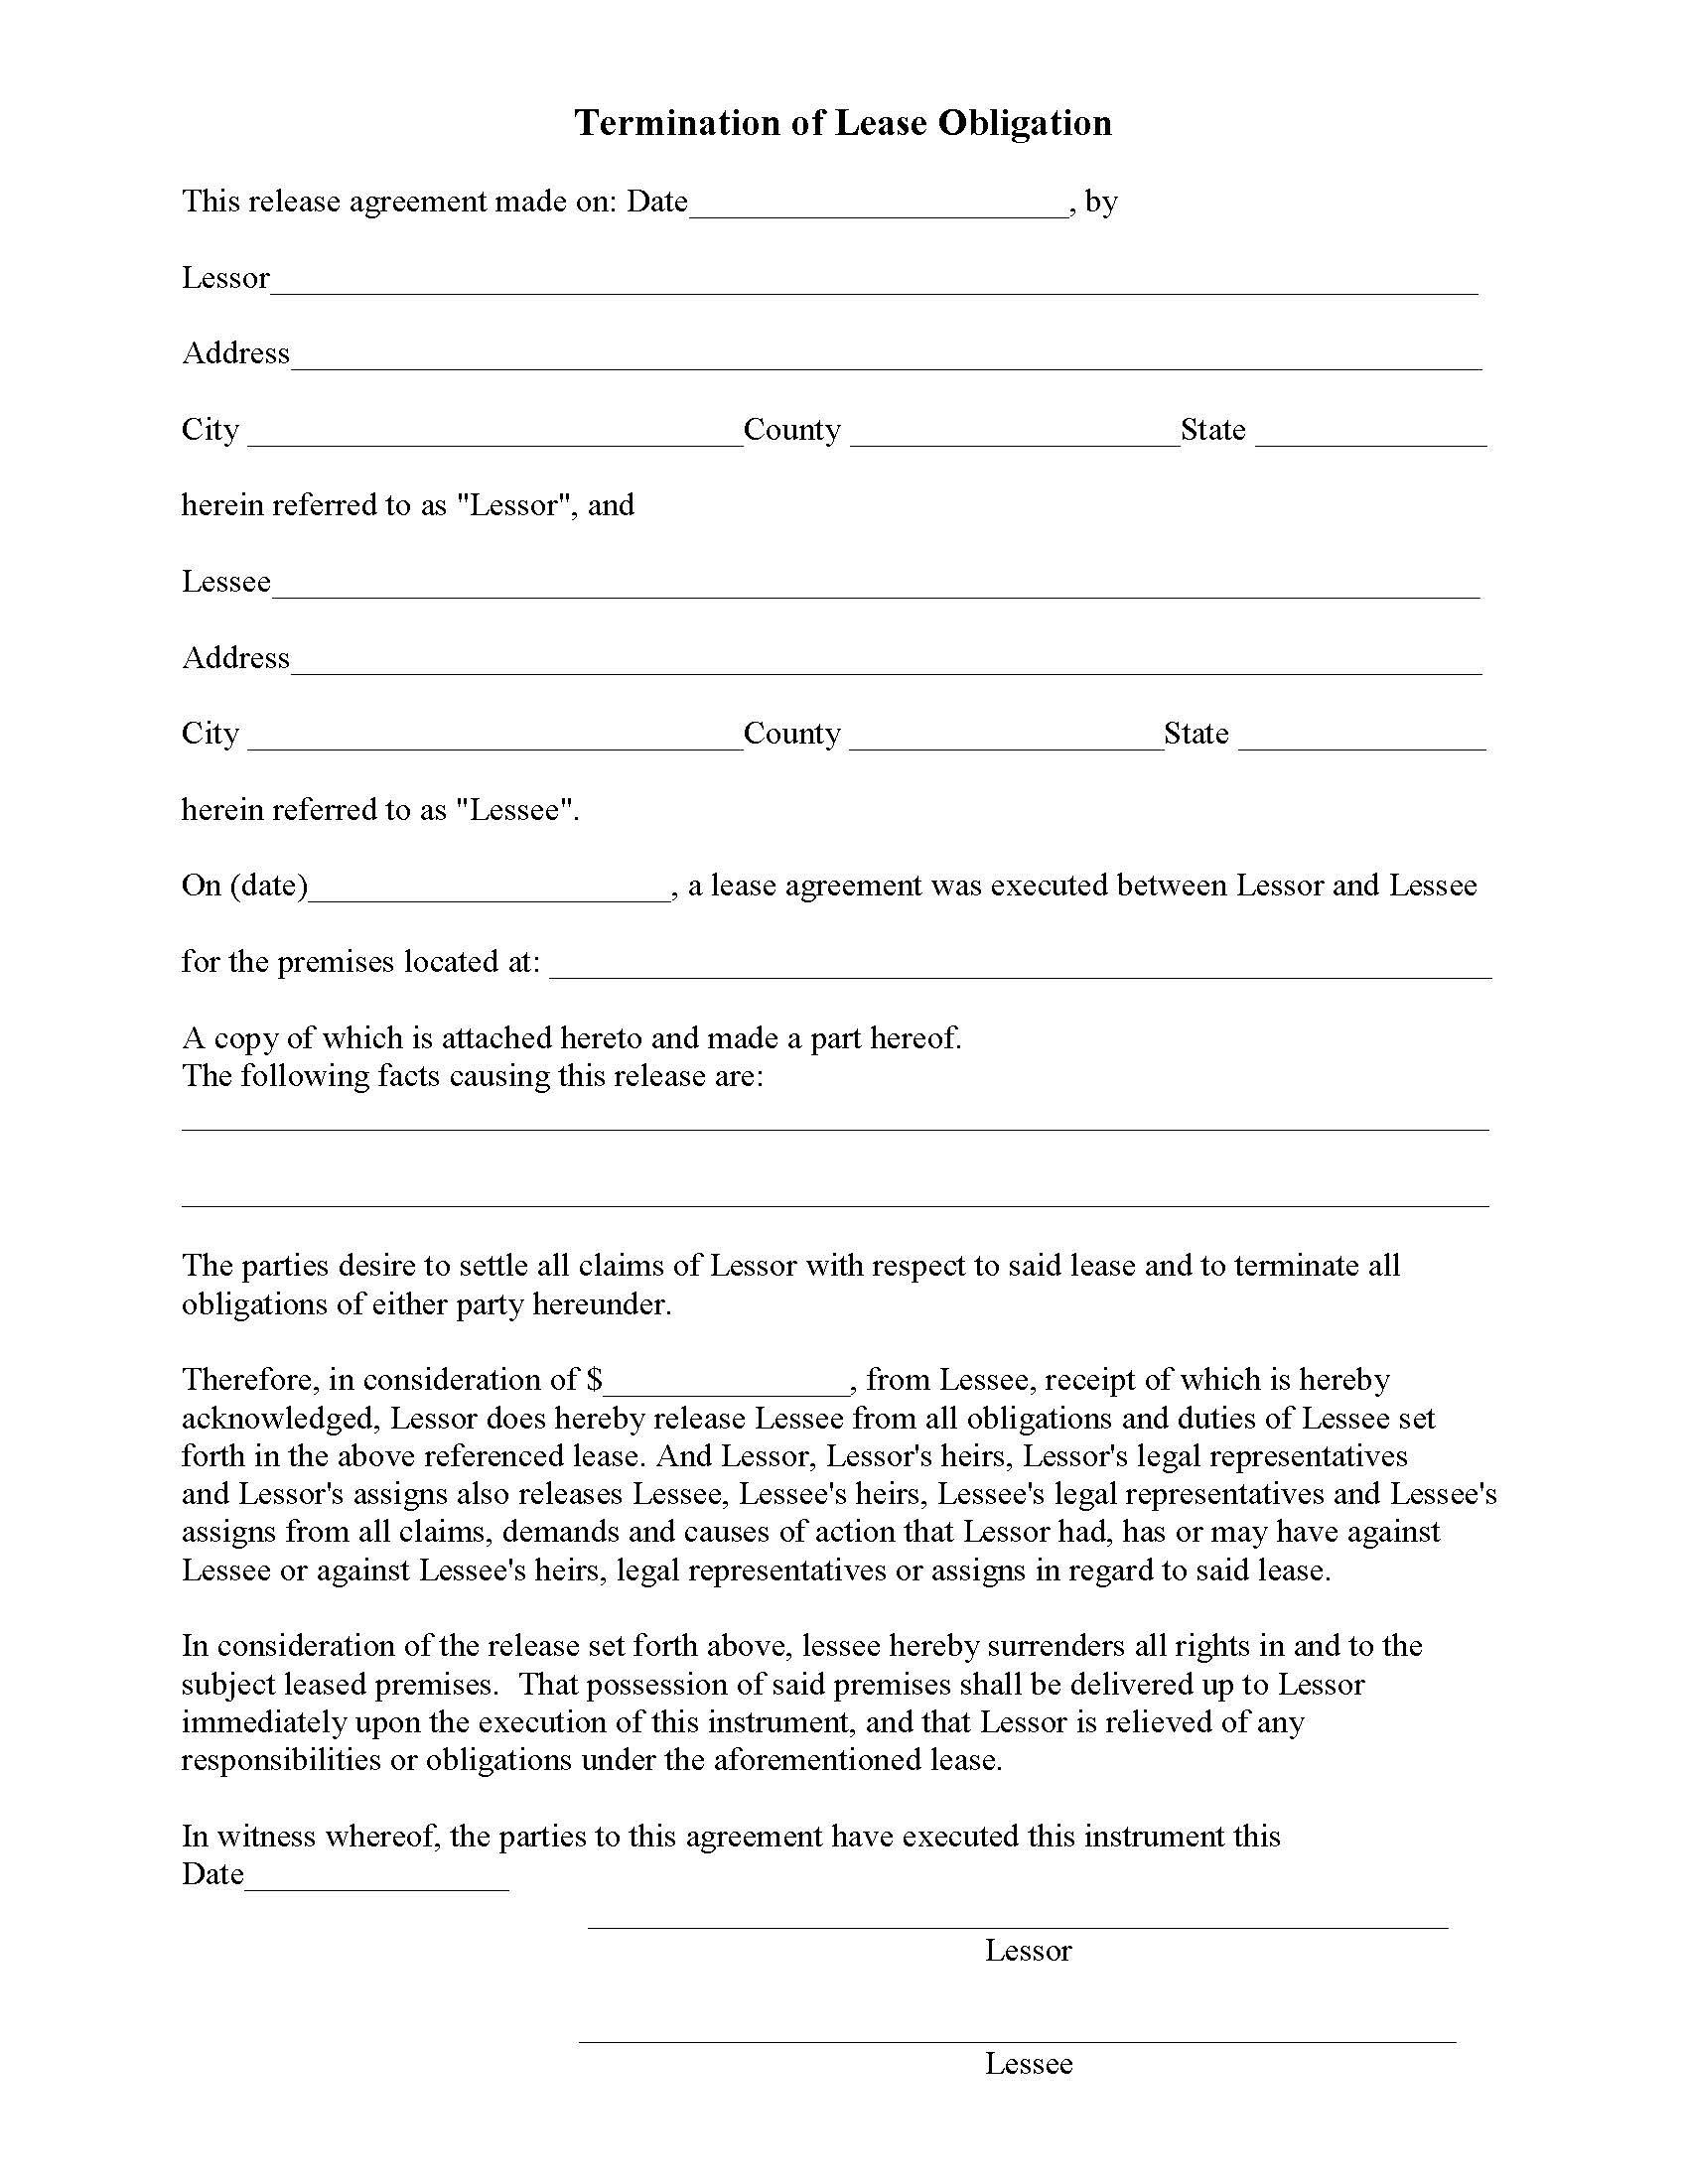 Lease Release Form Termination Of Lease Obligation  Release Forms Pertaining To Surrender Of Lease Agreement Template